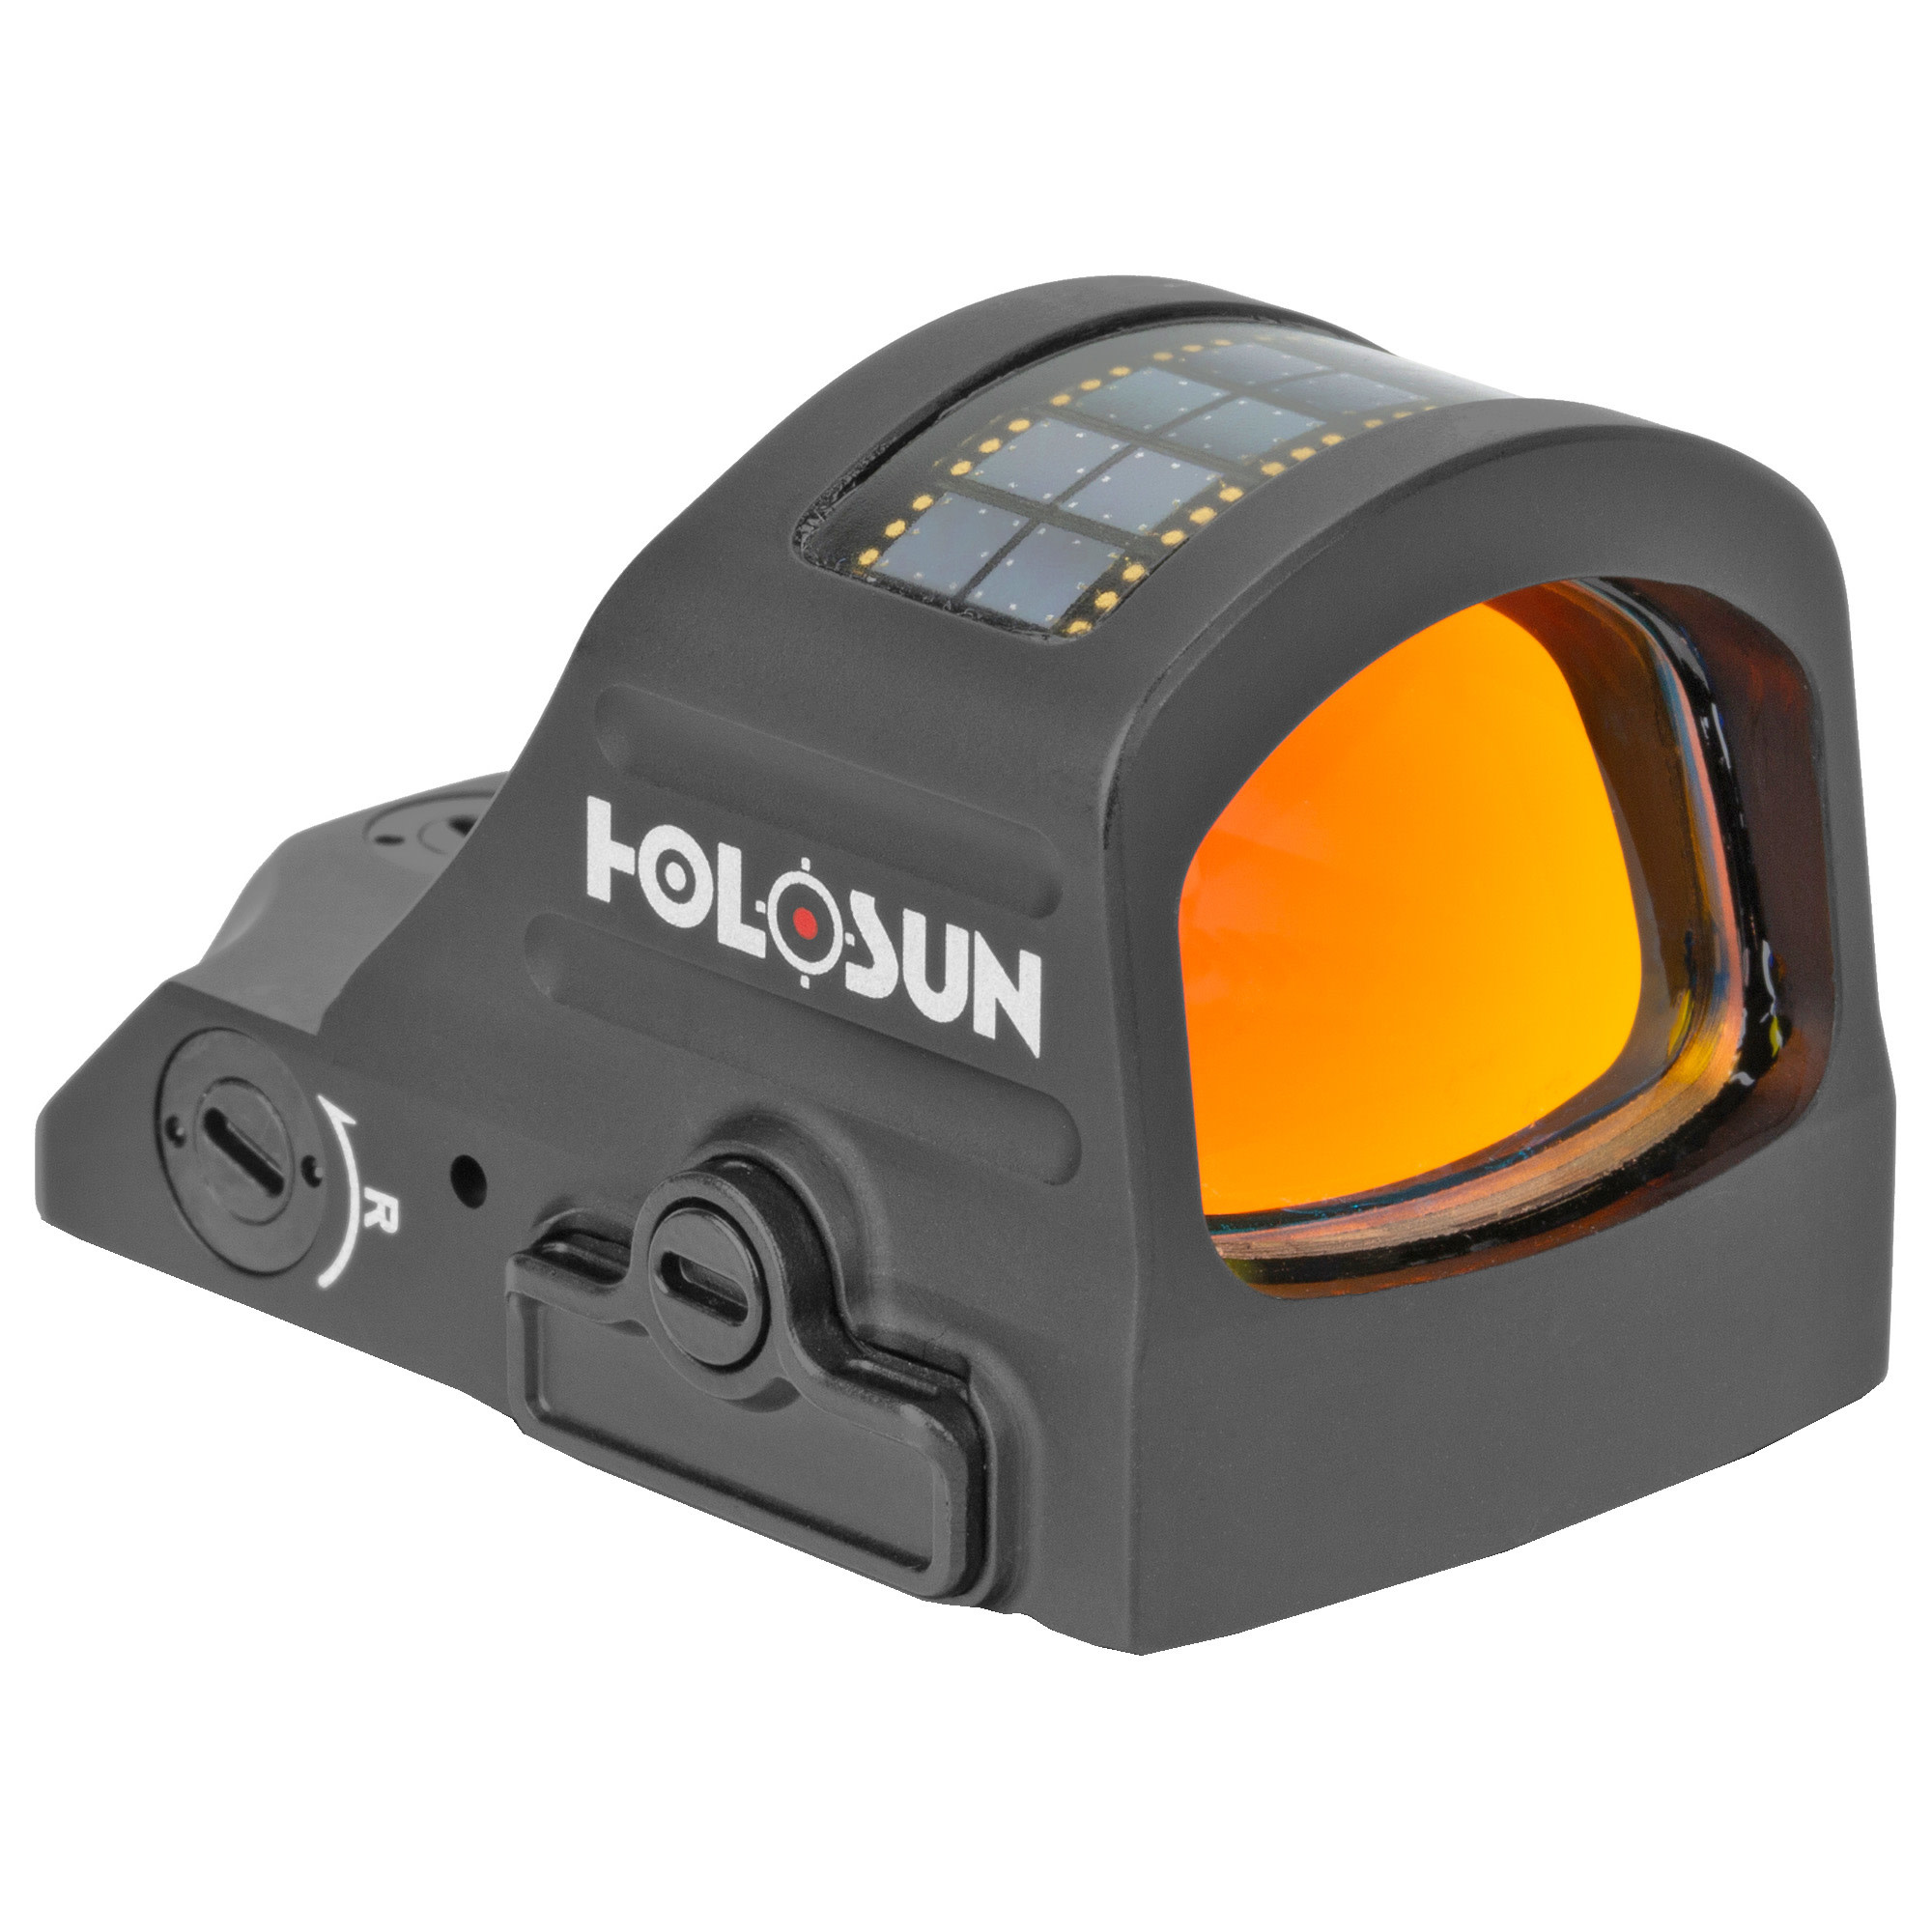 Holosun, 507C-X2, Red Dot, 32 MOA Ring & 2 MOA Dot, Black, Side Battery, Solar Failsafe